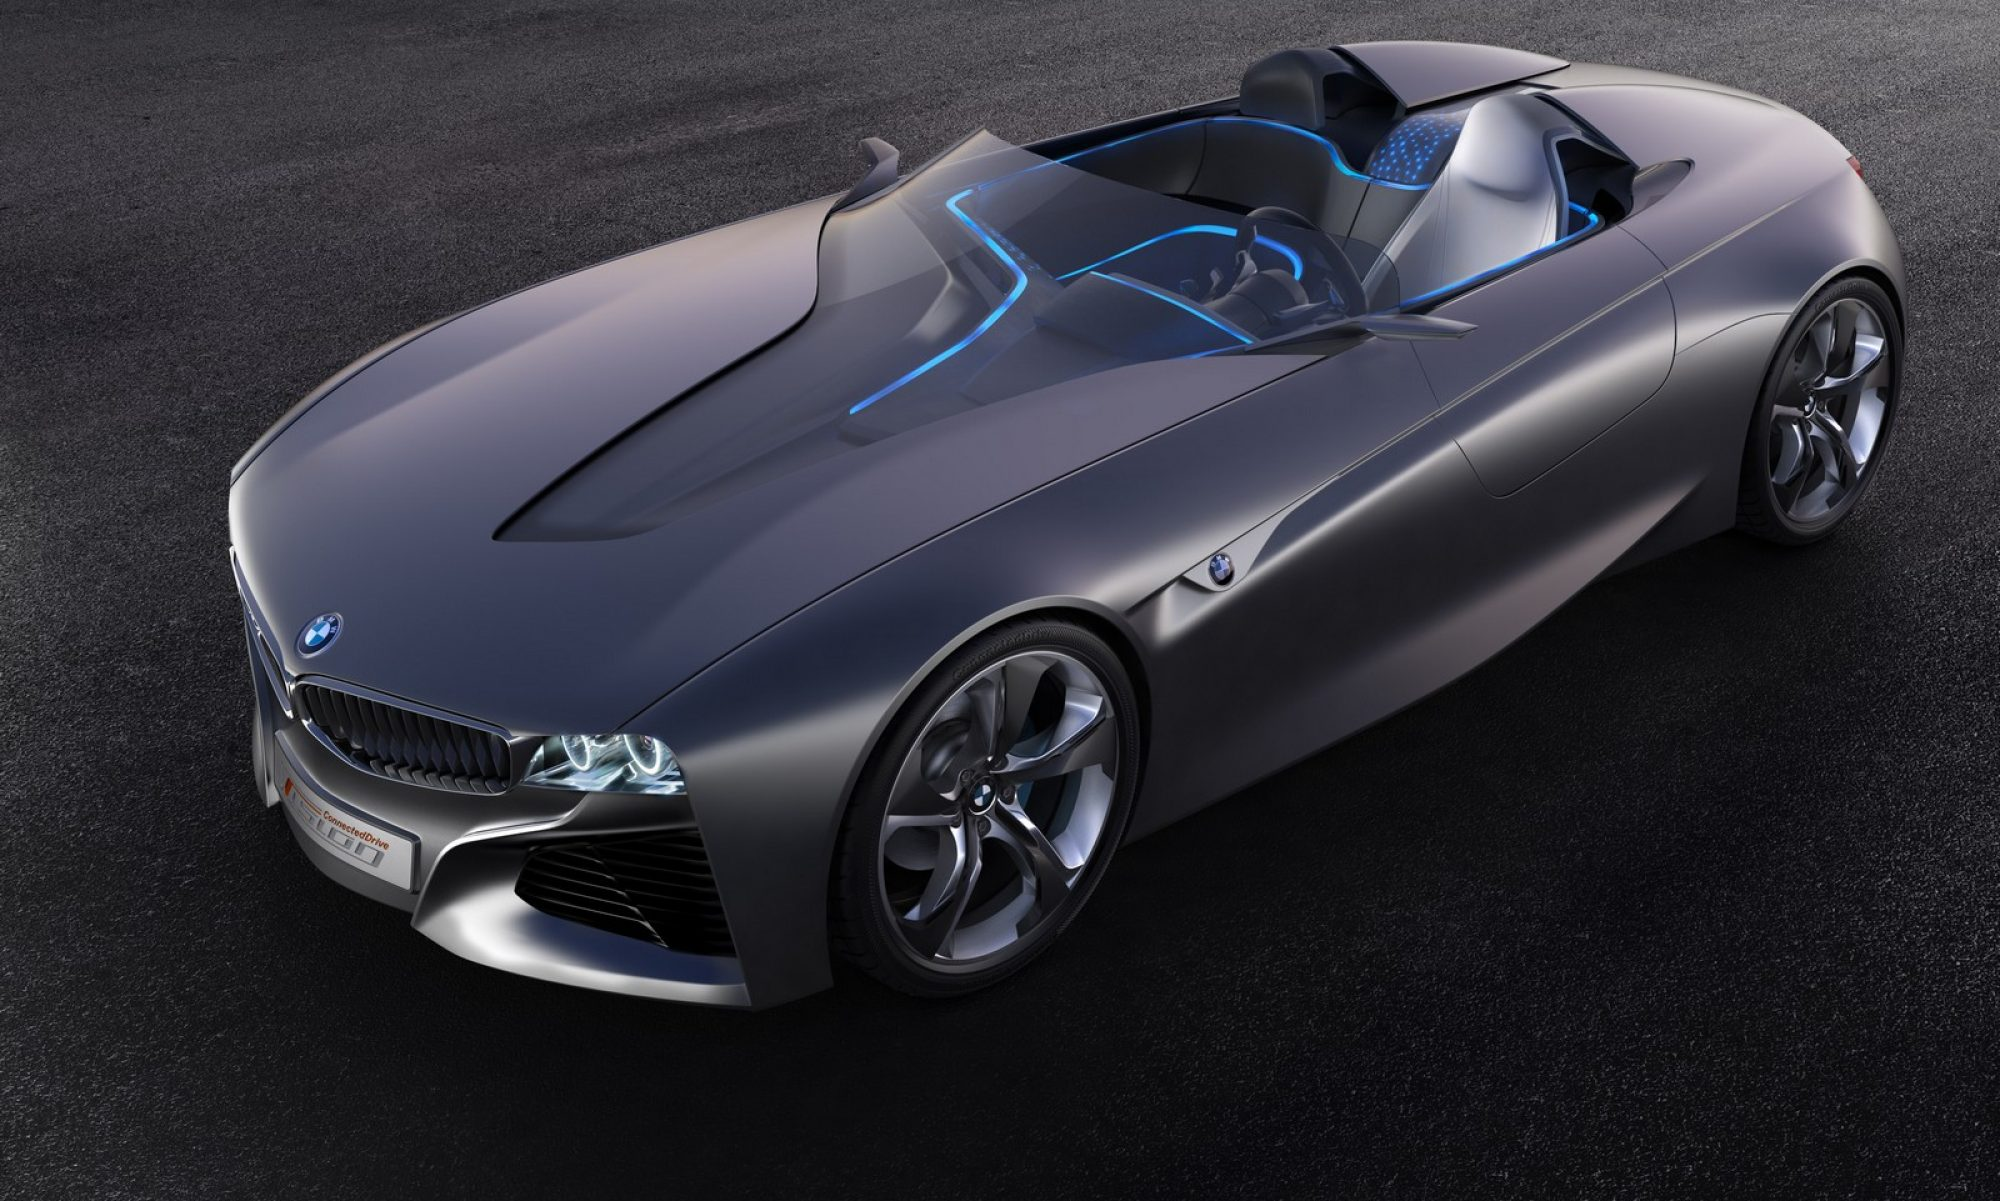 cropped-2011_bmw_connecteddrive_concept_2_1600x1200.jpg